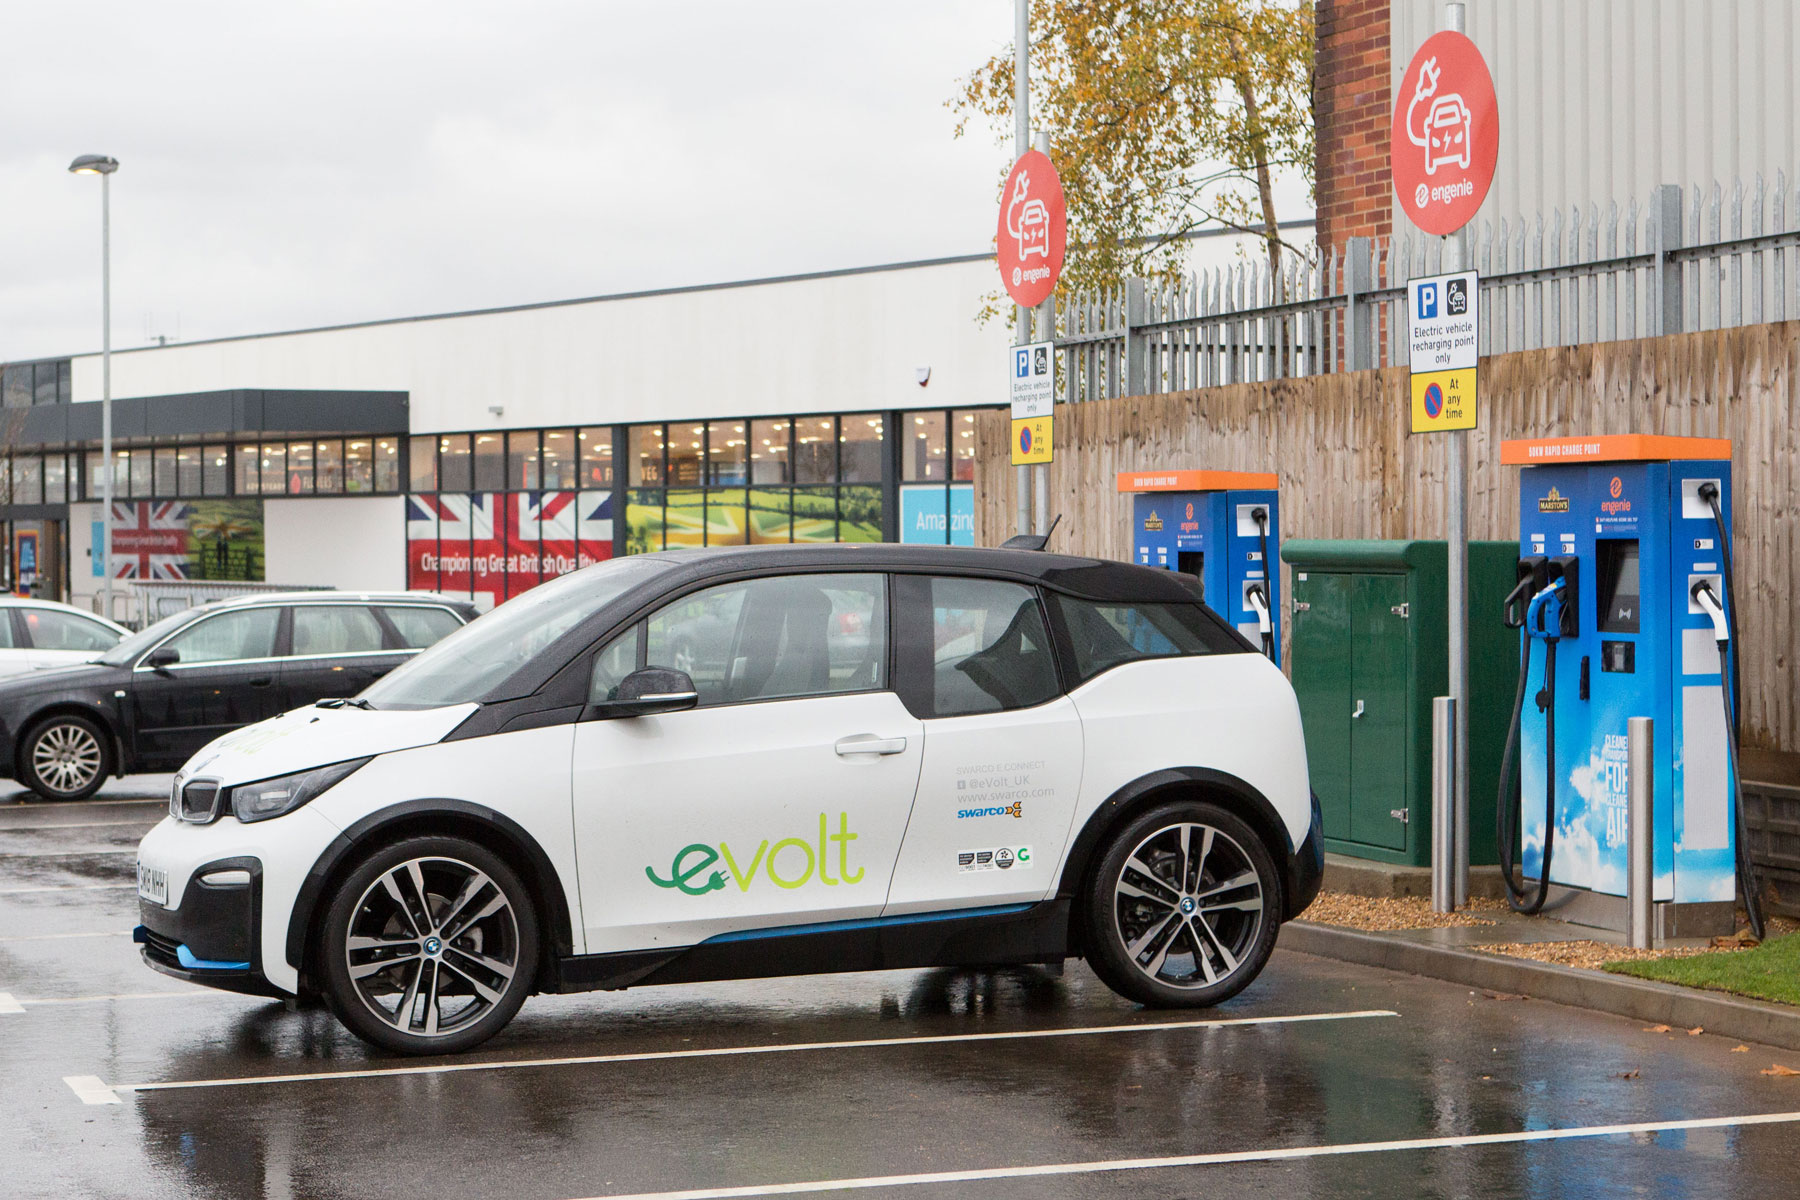 Engenie Marstons rapid charging